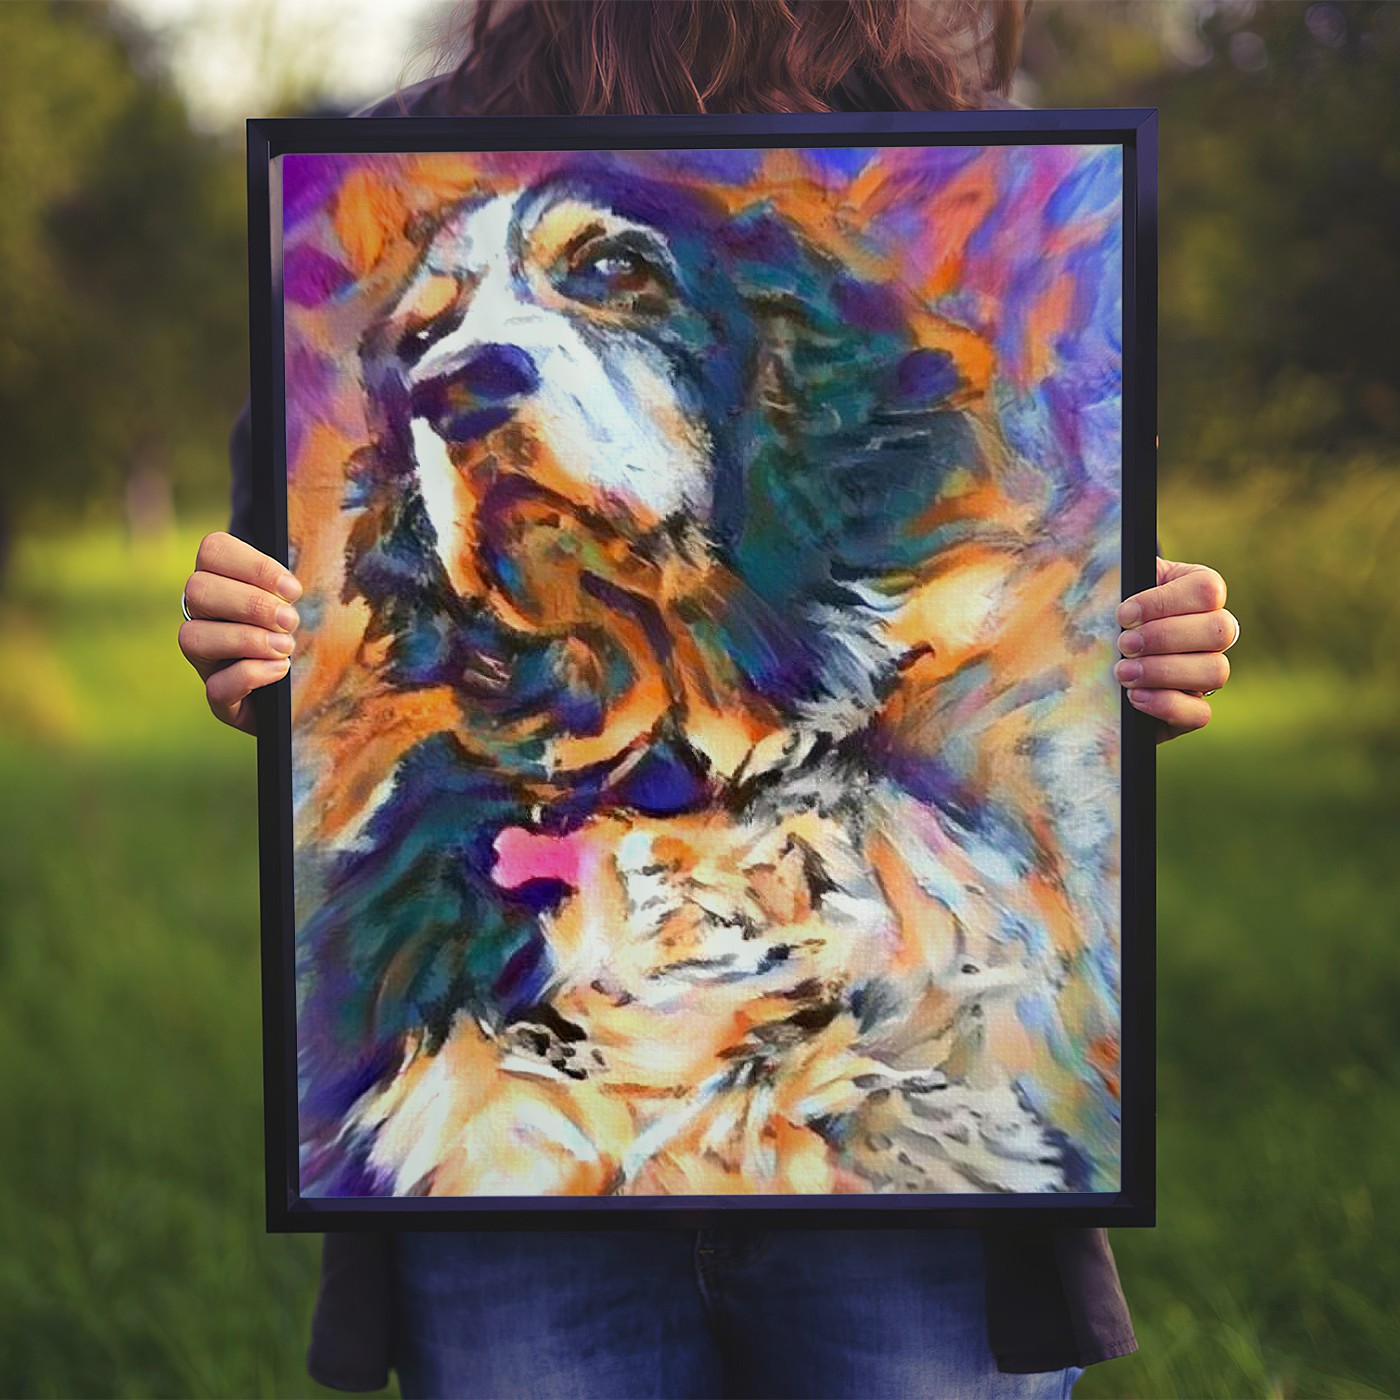 The Edge - Bespoke pet portraits personalized just for you